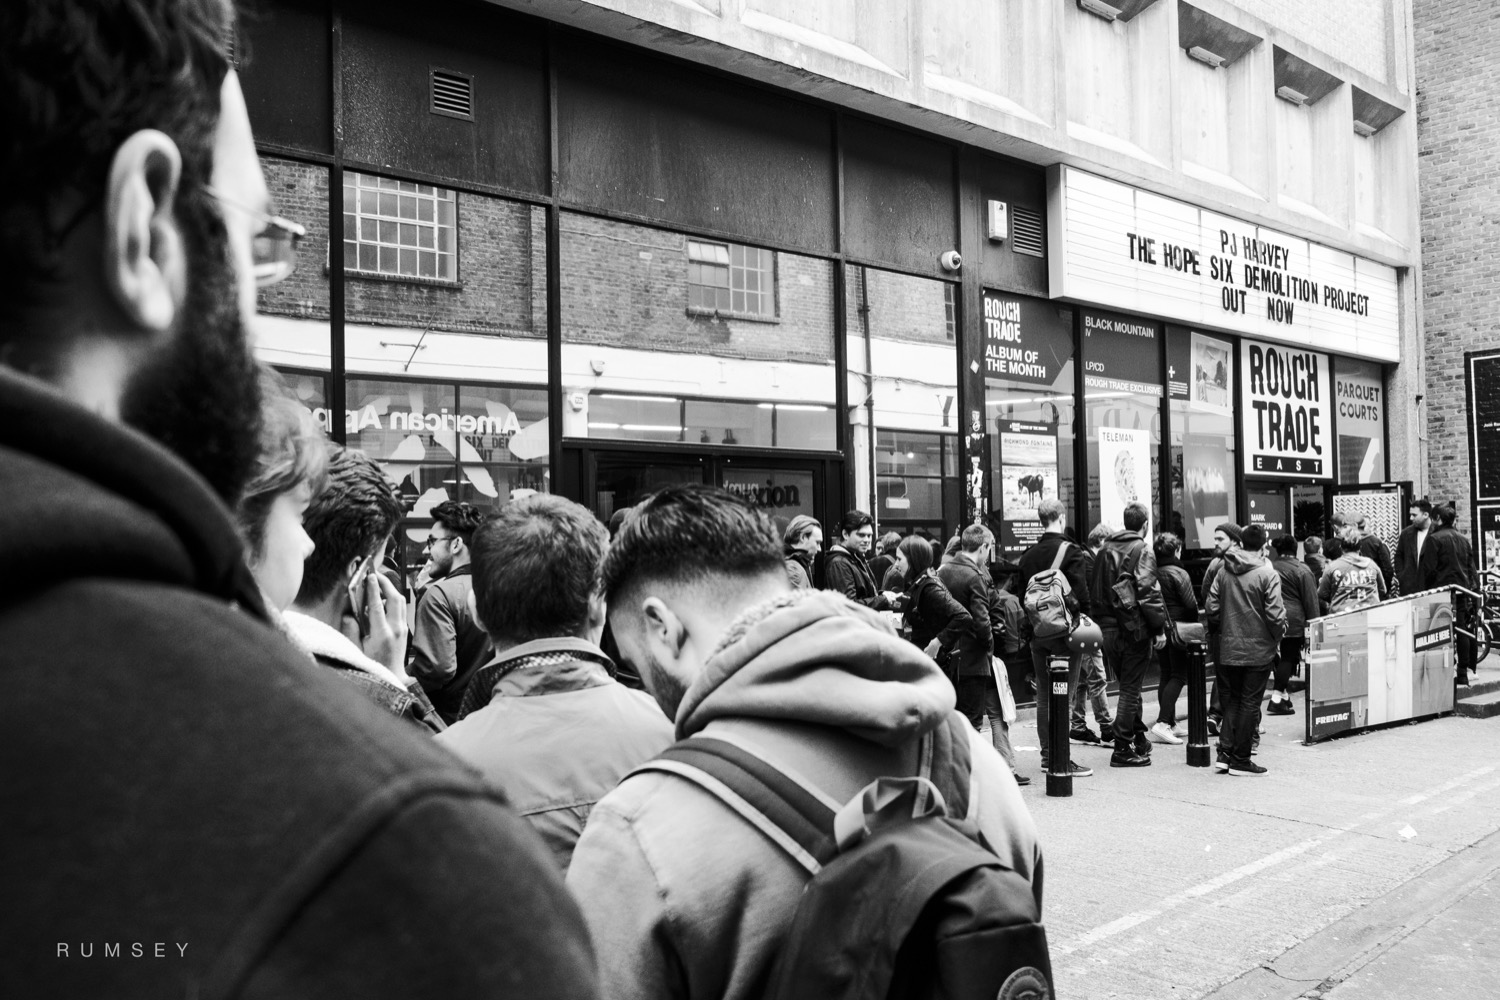 The queue to get into Rough Trade East on Record Store Day 2016